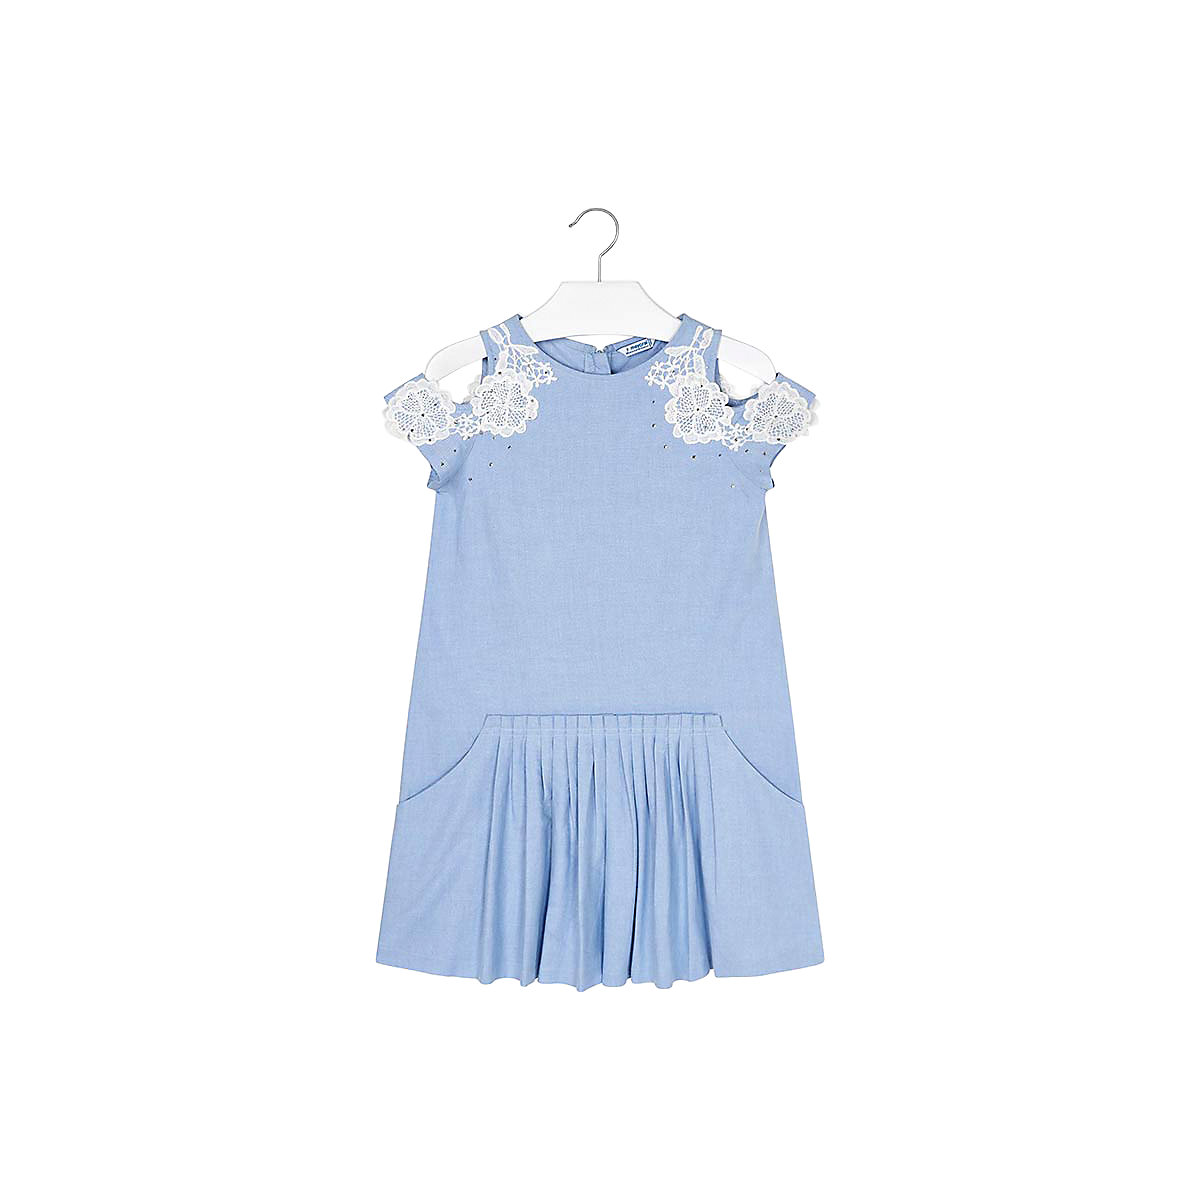 MAYORAL Dresses 10691255 Girl Children fitted pleated skirt Multi Cotton Casual Solid Knee-Length Sleeveless Sleeve